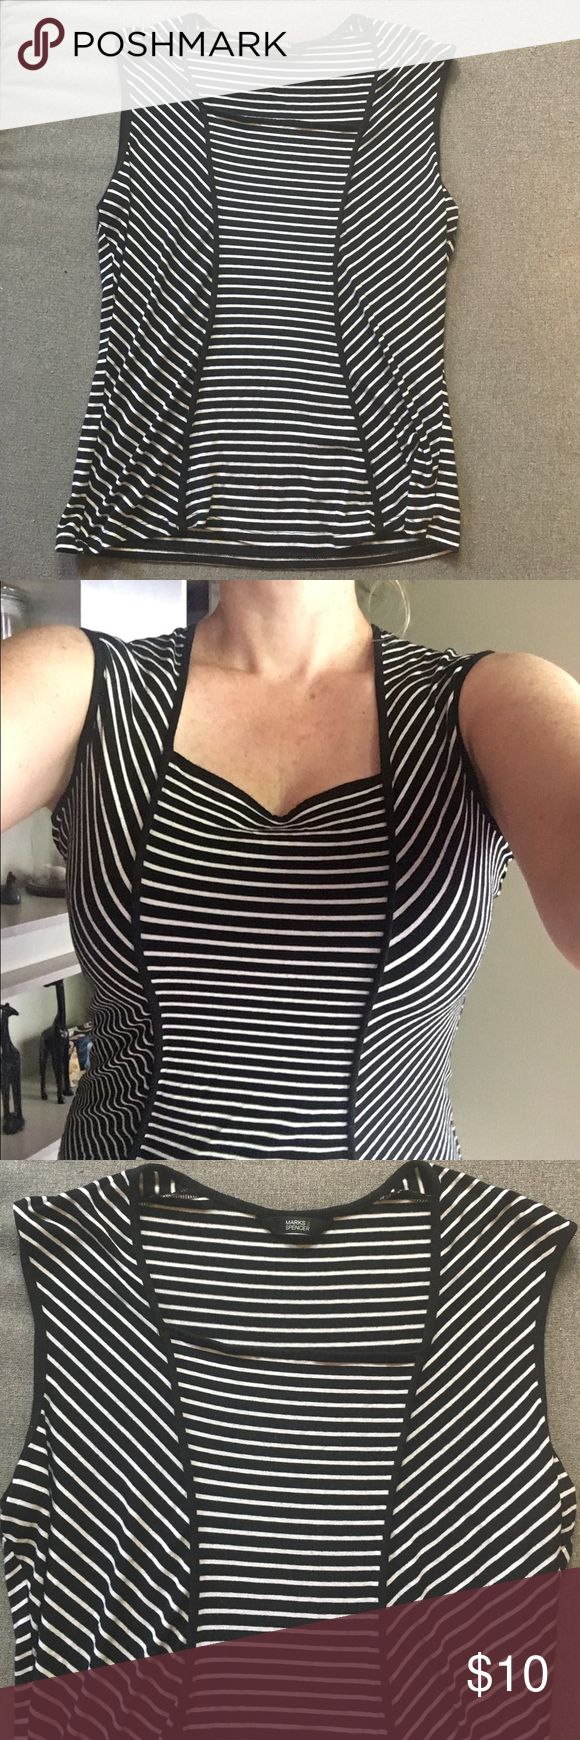 Marks&Spencer fitted b&w soft sleeveless shirt Soft and striped sleeveless shirt, made of 92%viscose and 8%elastane means it is soft and stretchy! A definite favorite for your closet and will look great under a suit jacket! Great condition, no visible signs of wear. UK size 14 = US 12 Marks & Spencer Tops